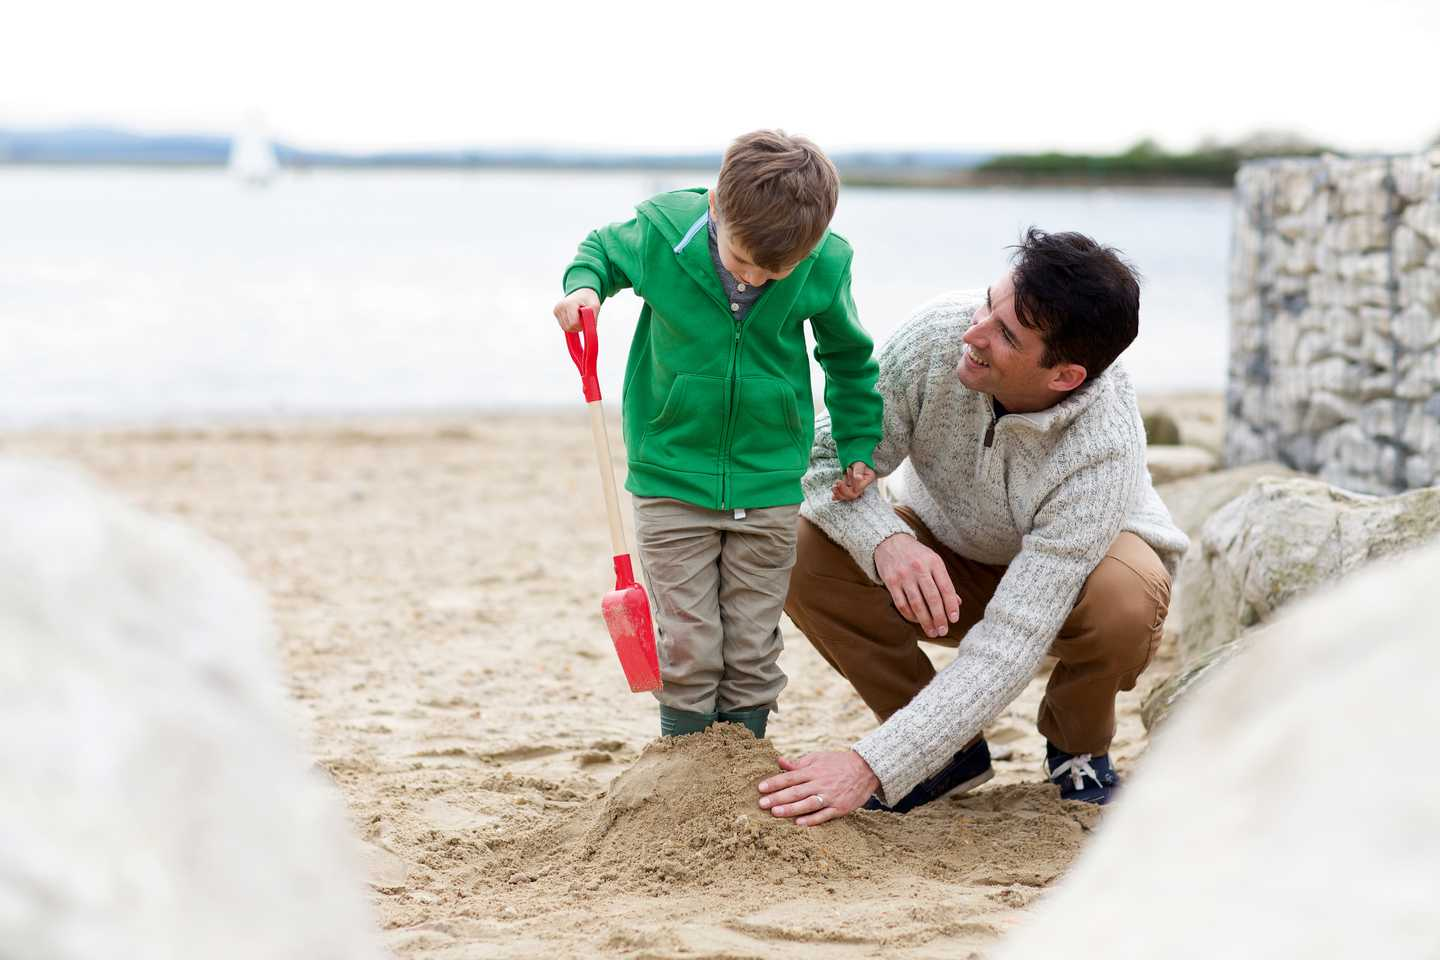 A father and son building sandcastles on the beach